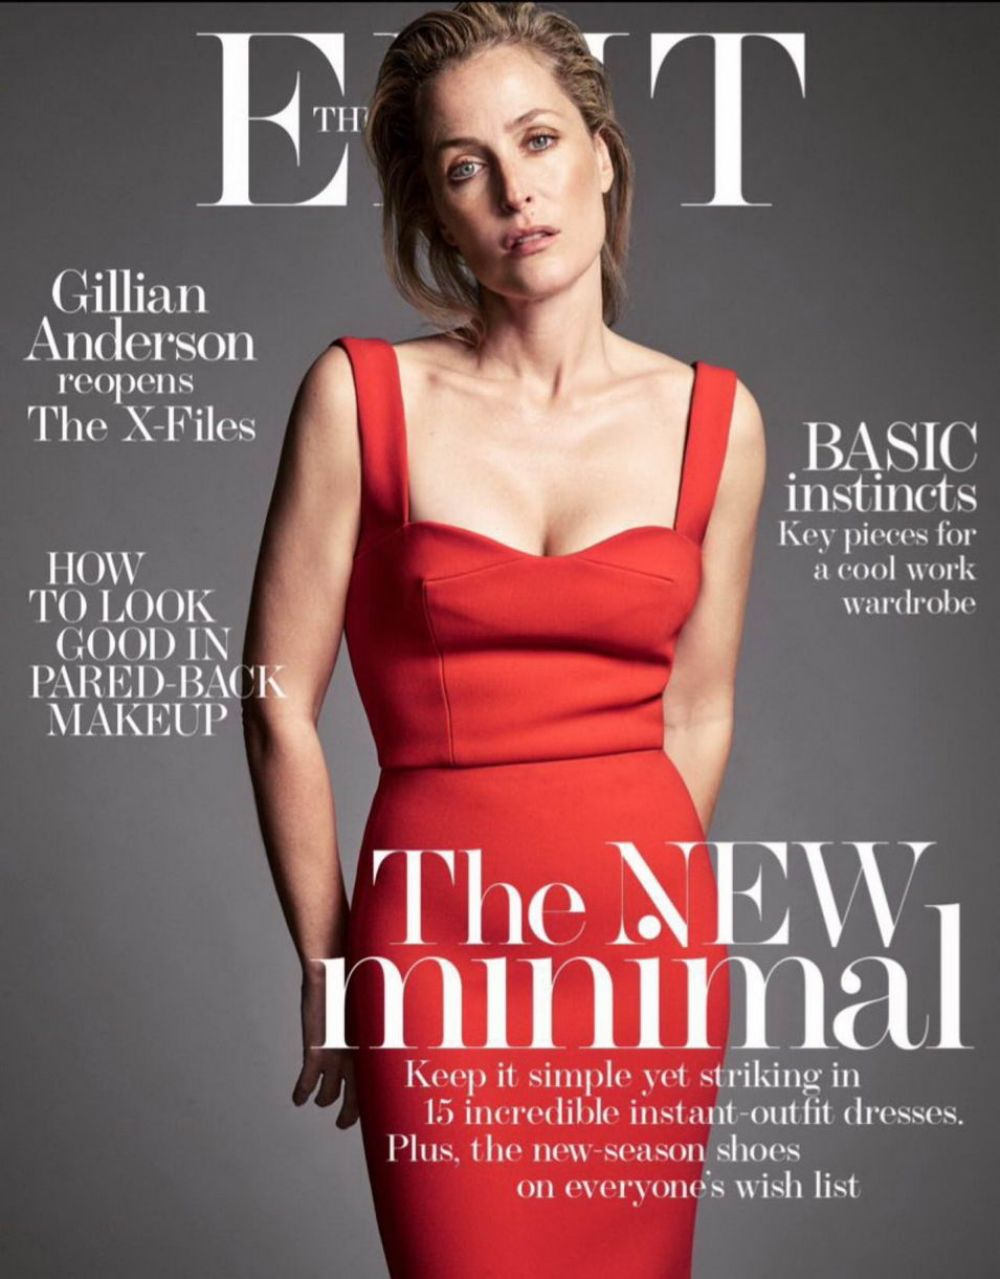 GILLIAN ANDERSON in Edit Magazine, January 2016 Issue